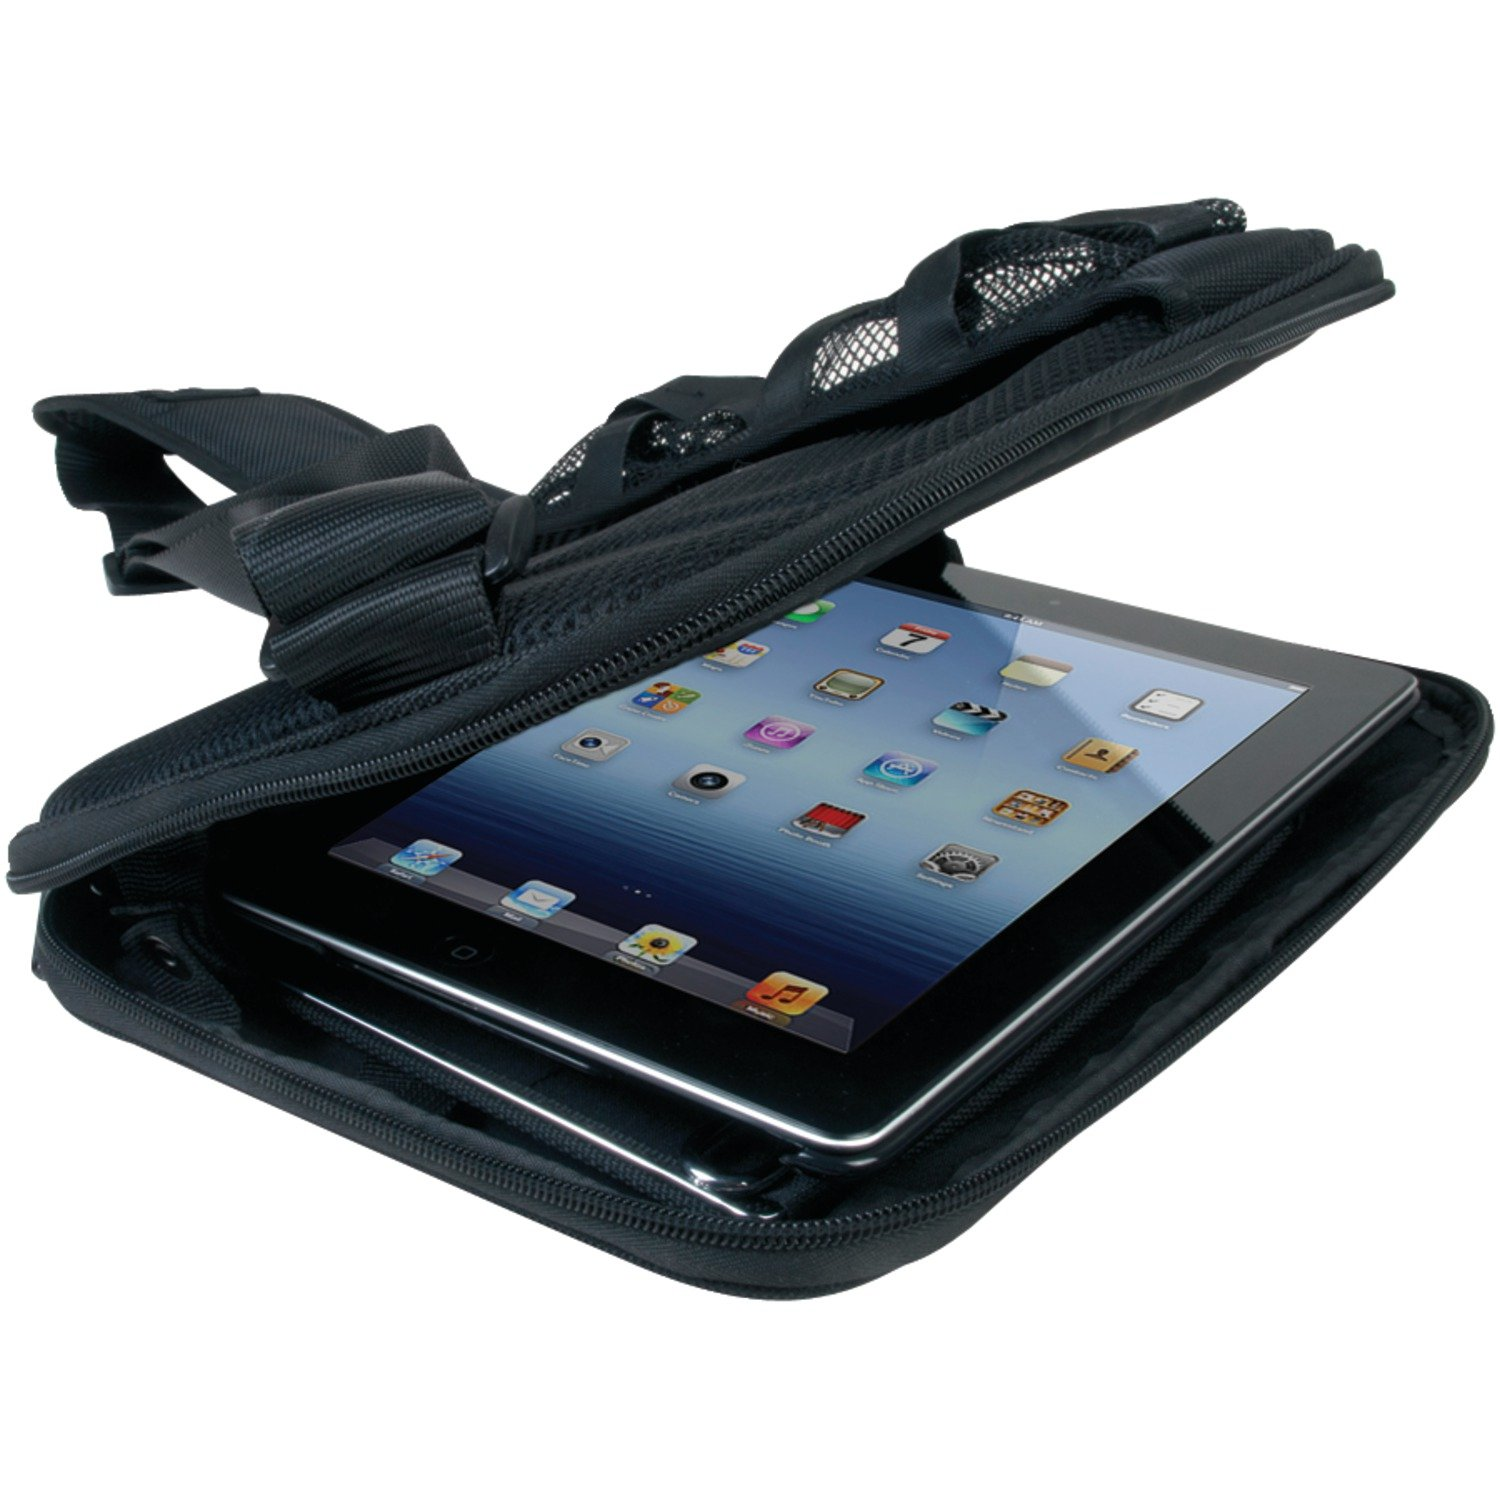 CTA Digital Hands-Free Carrying Case for iPad 2/3 (PAD-HFCC) by CTA Digital